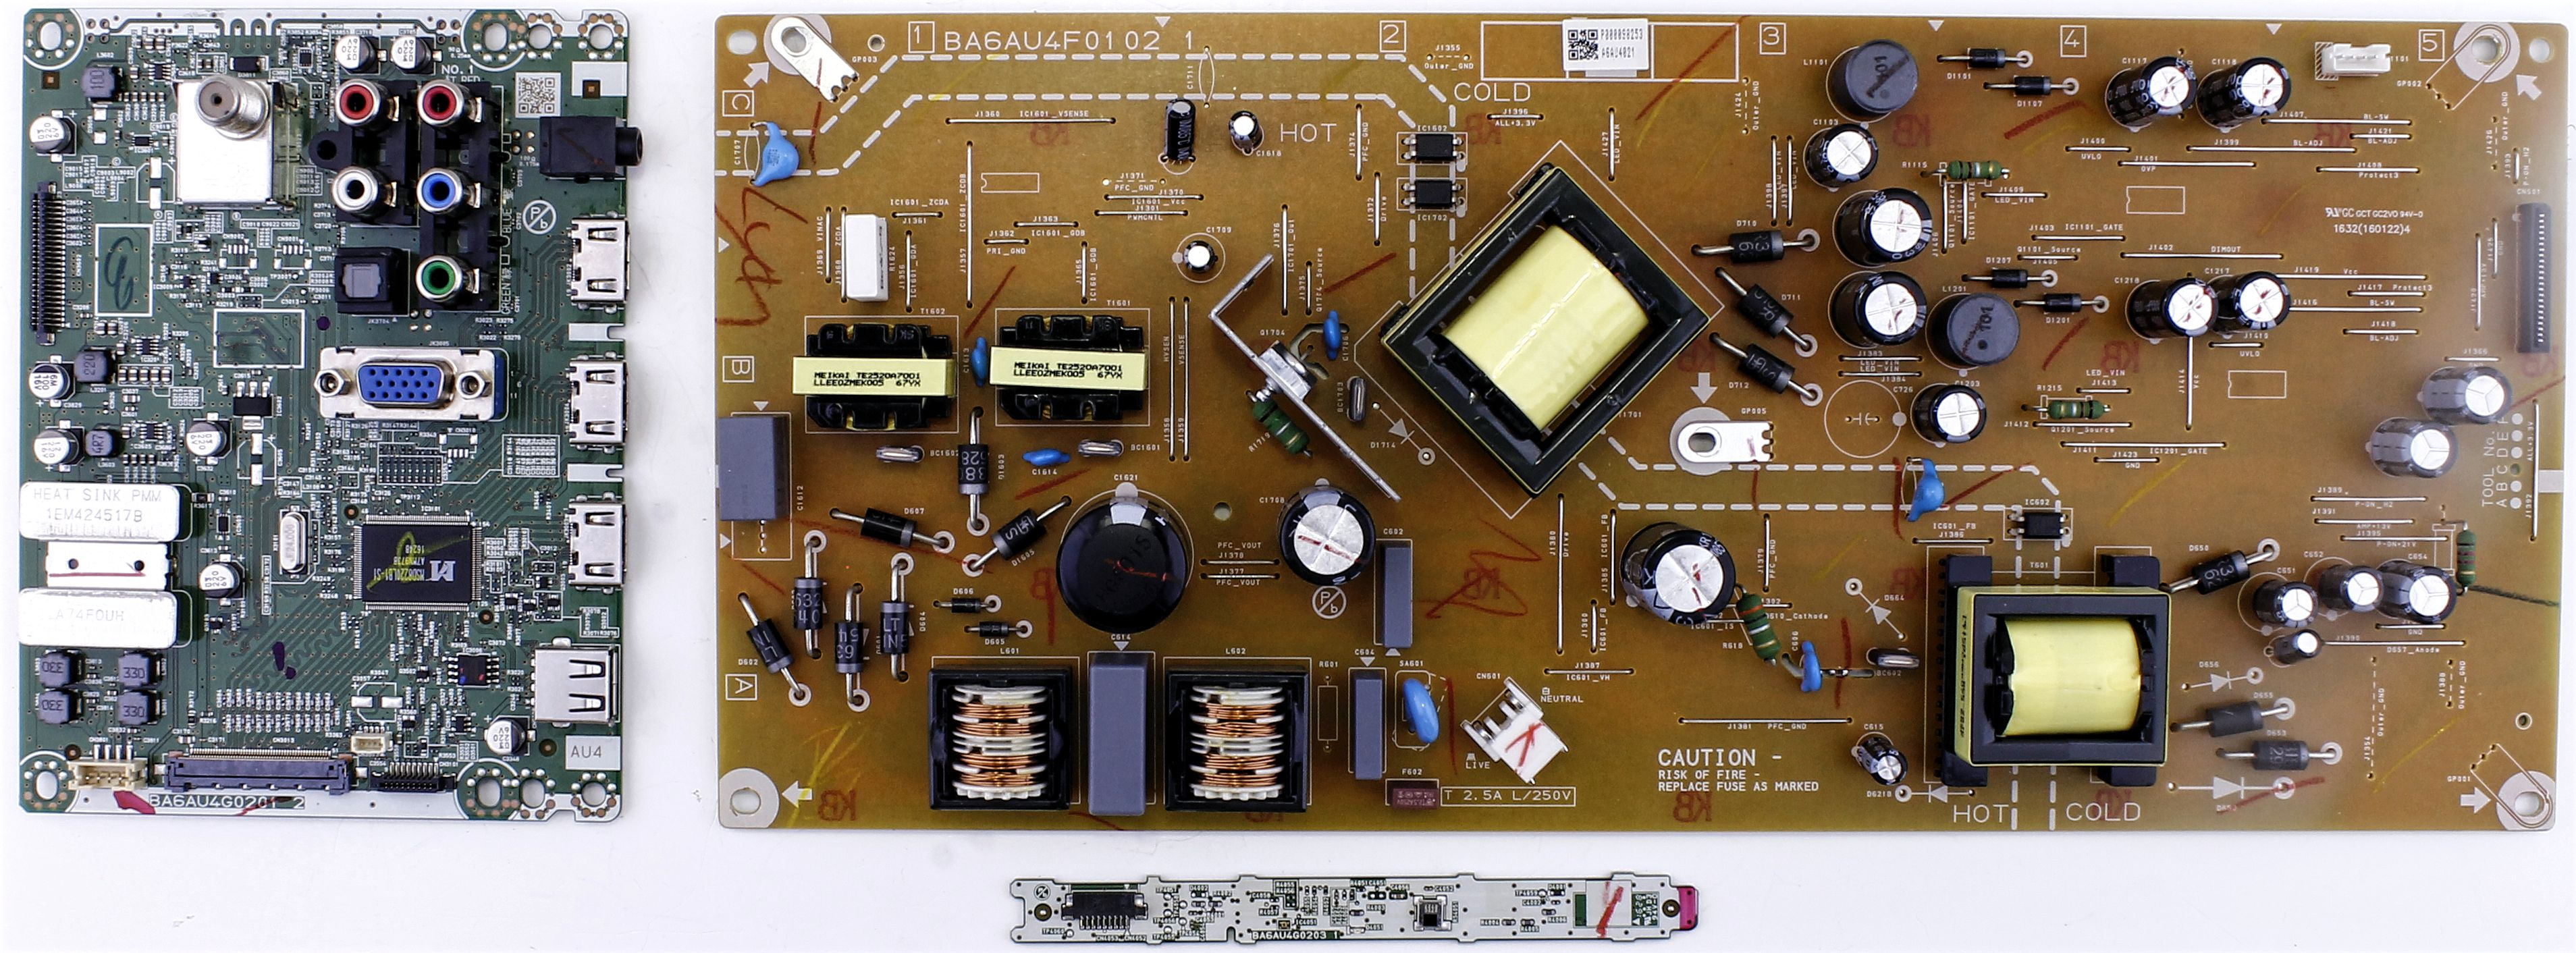 BA6AU4G0201 Sanyo board kit for FW50D36F